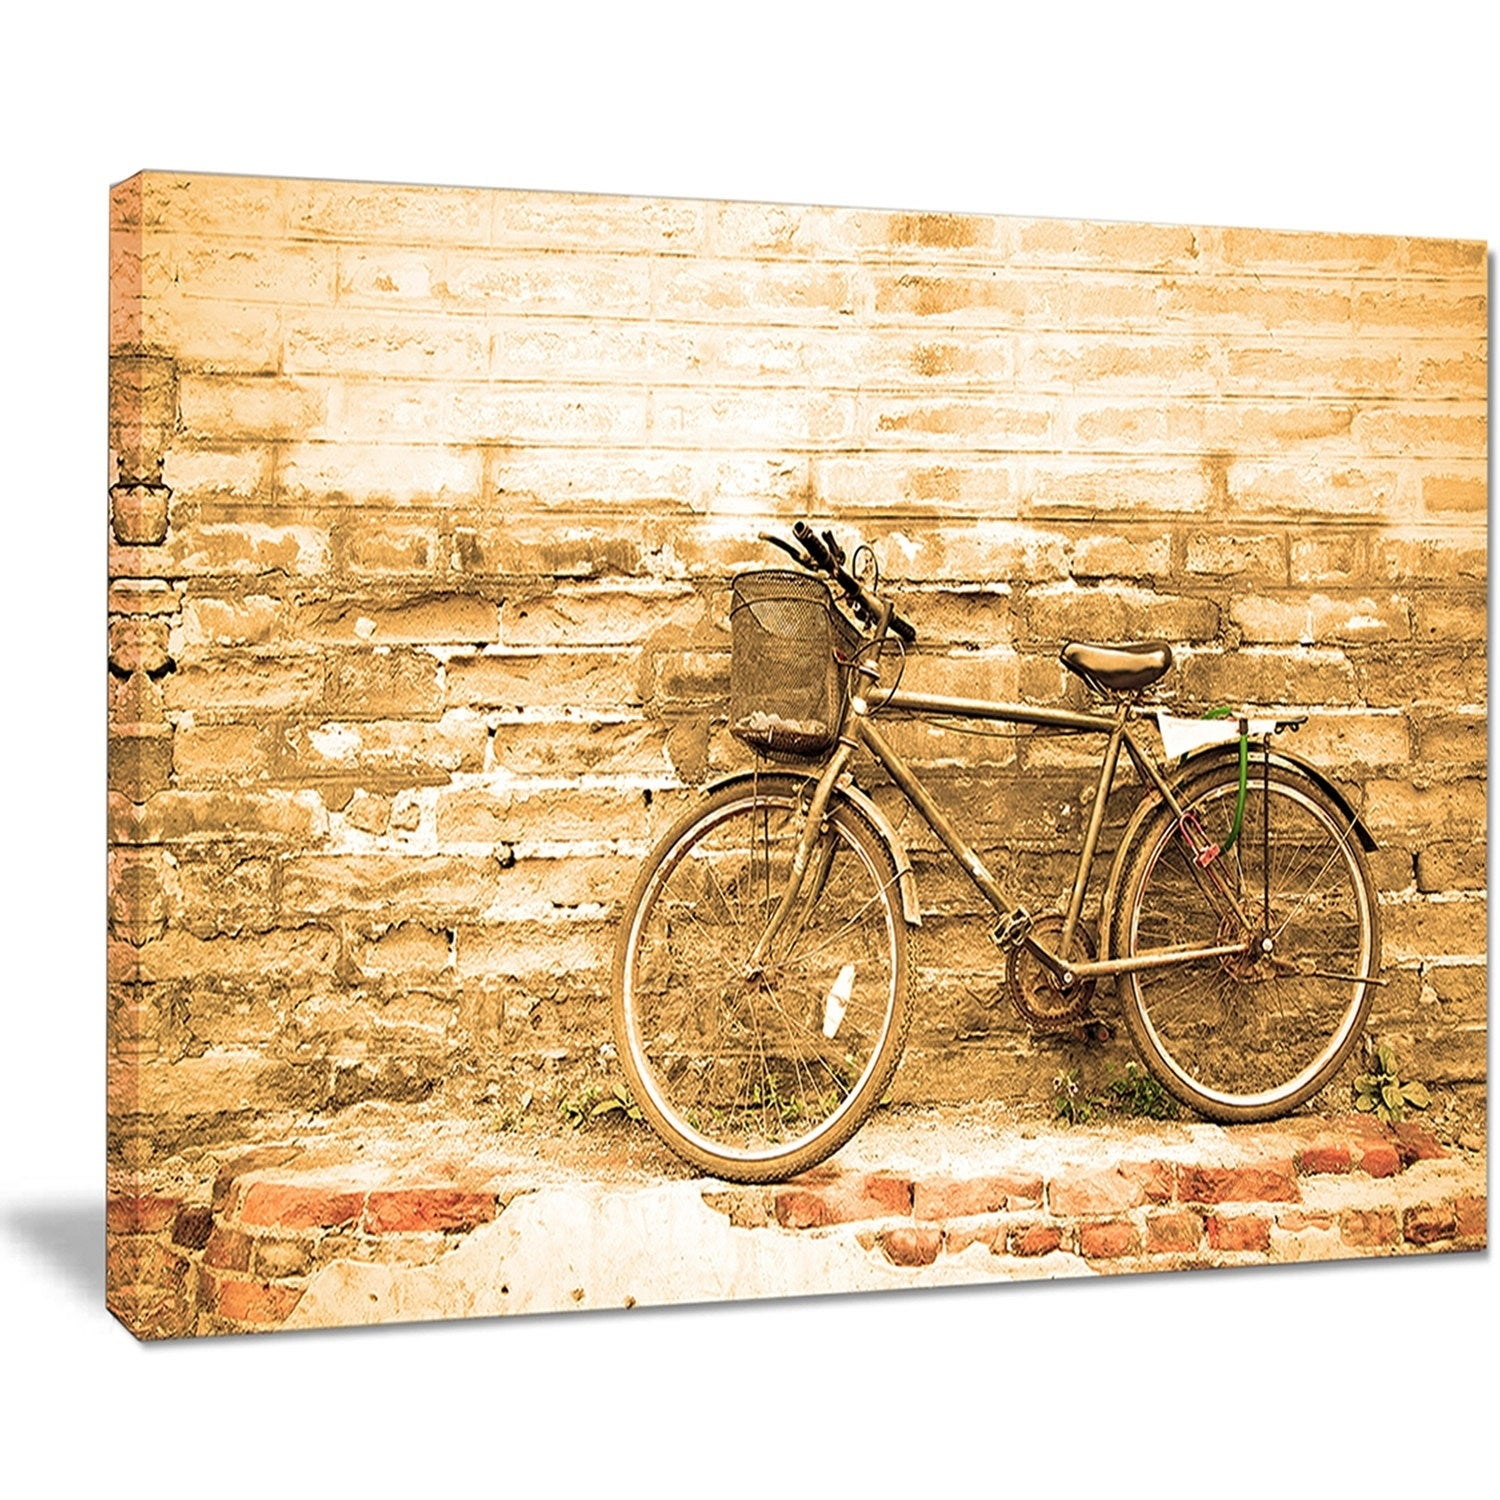 Vintage Bicycle against Brown Wall - Landscape Canvas Print - Free ...